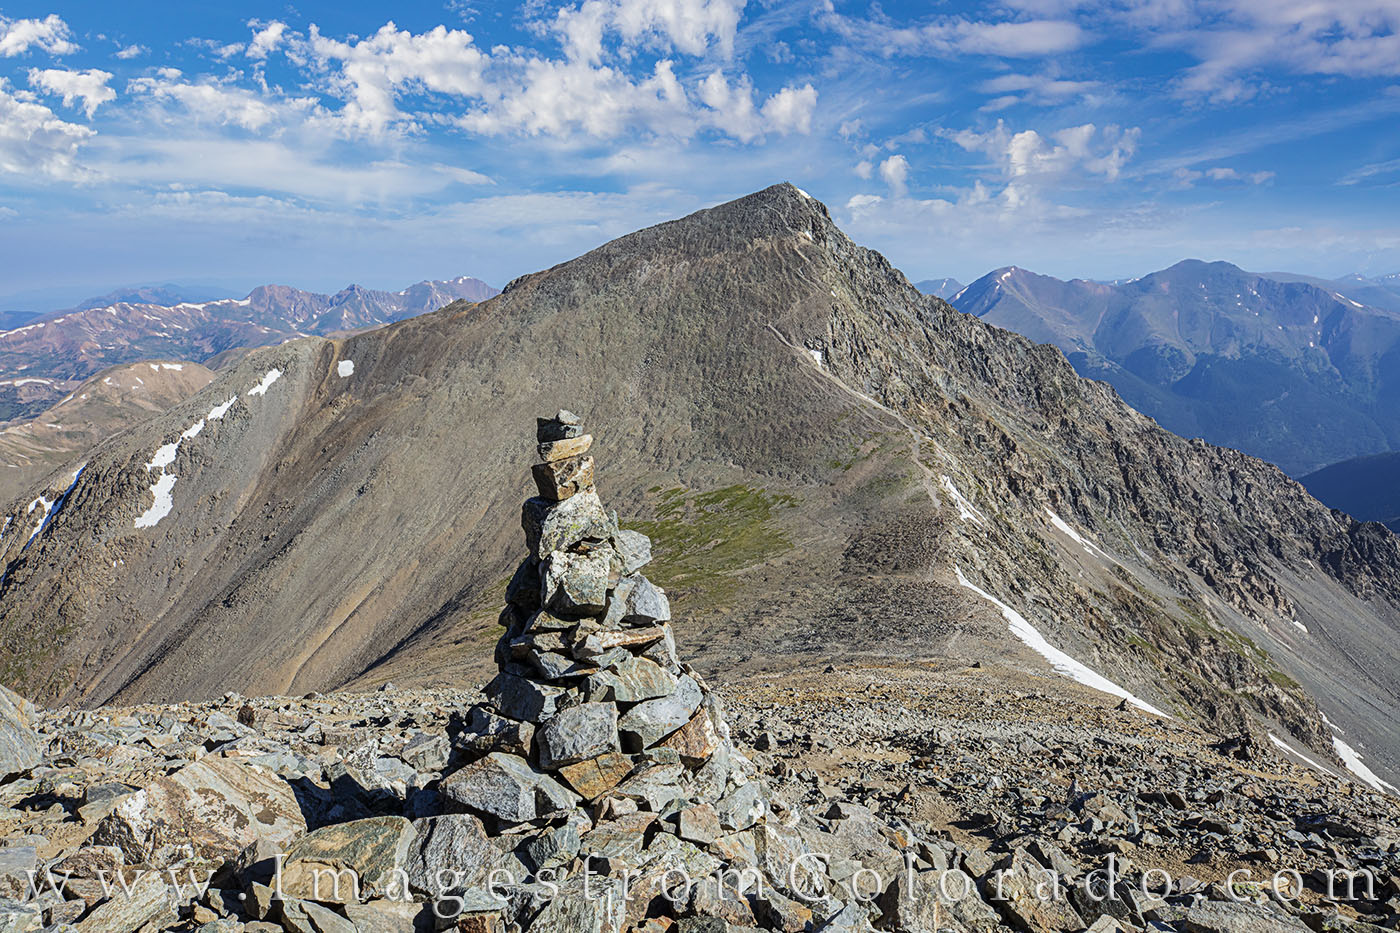 14ers, Grays Peak, Torreys Peak, Colorado 14ers, Stevens Gulch, Continental Divide Trail, cairn, summer, rocky mountains, photo